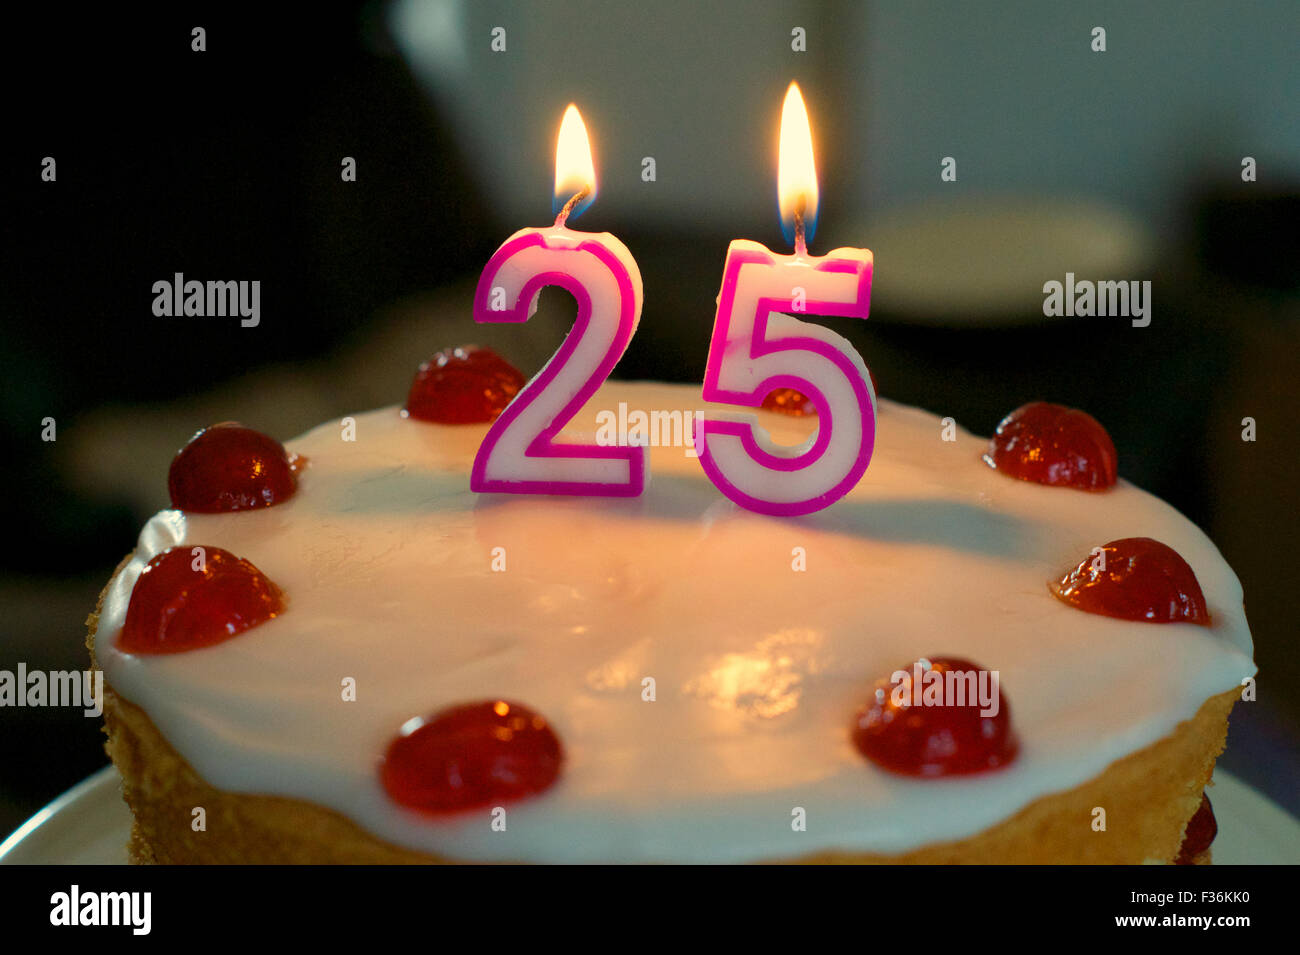 25th Birthday Cake With Cherries And 2 5 Candles On Top